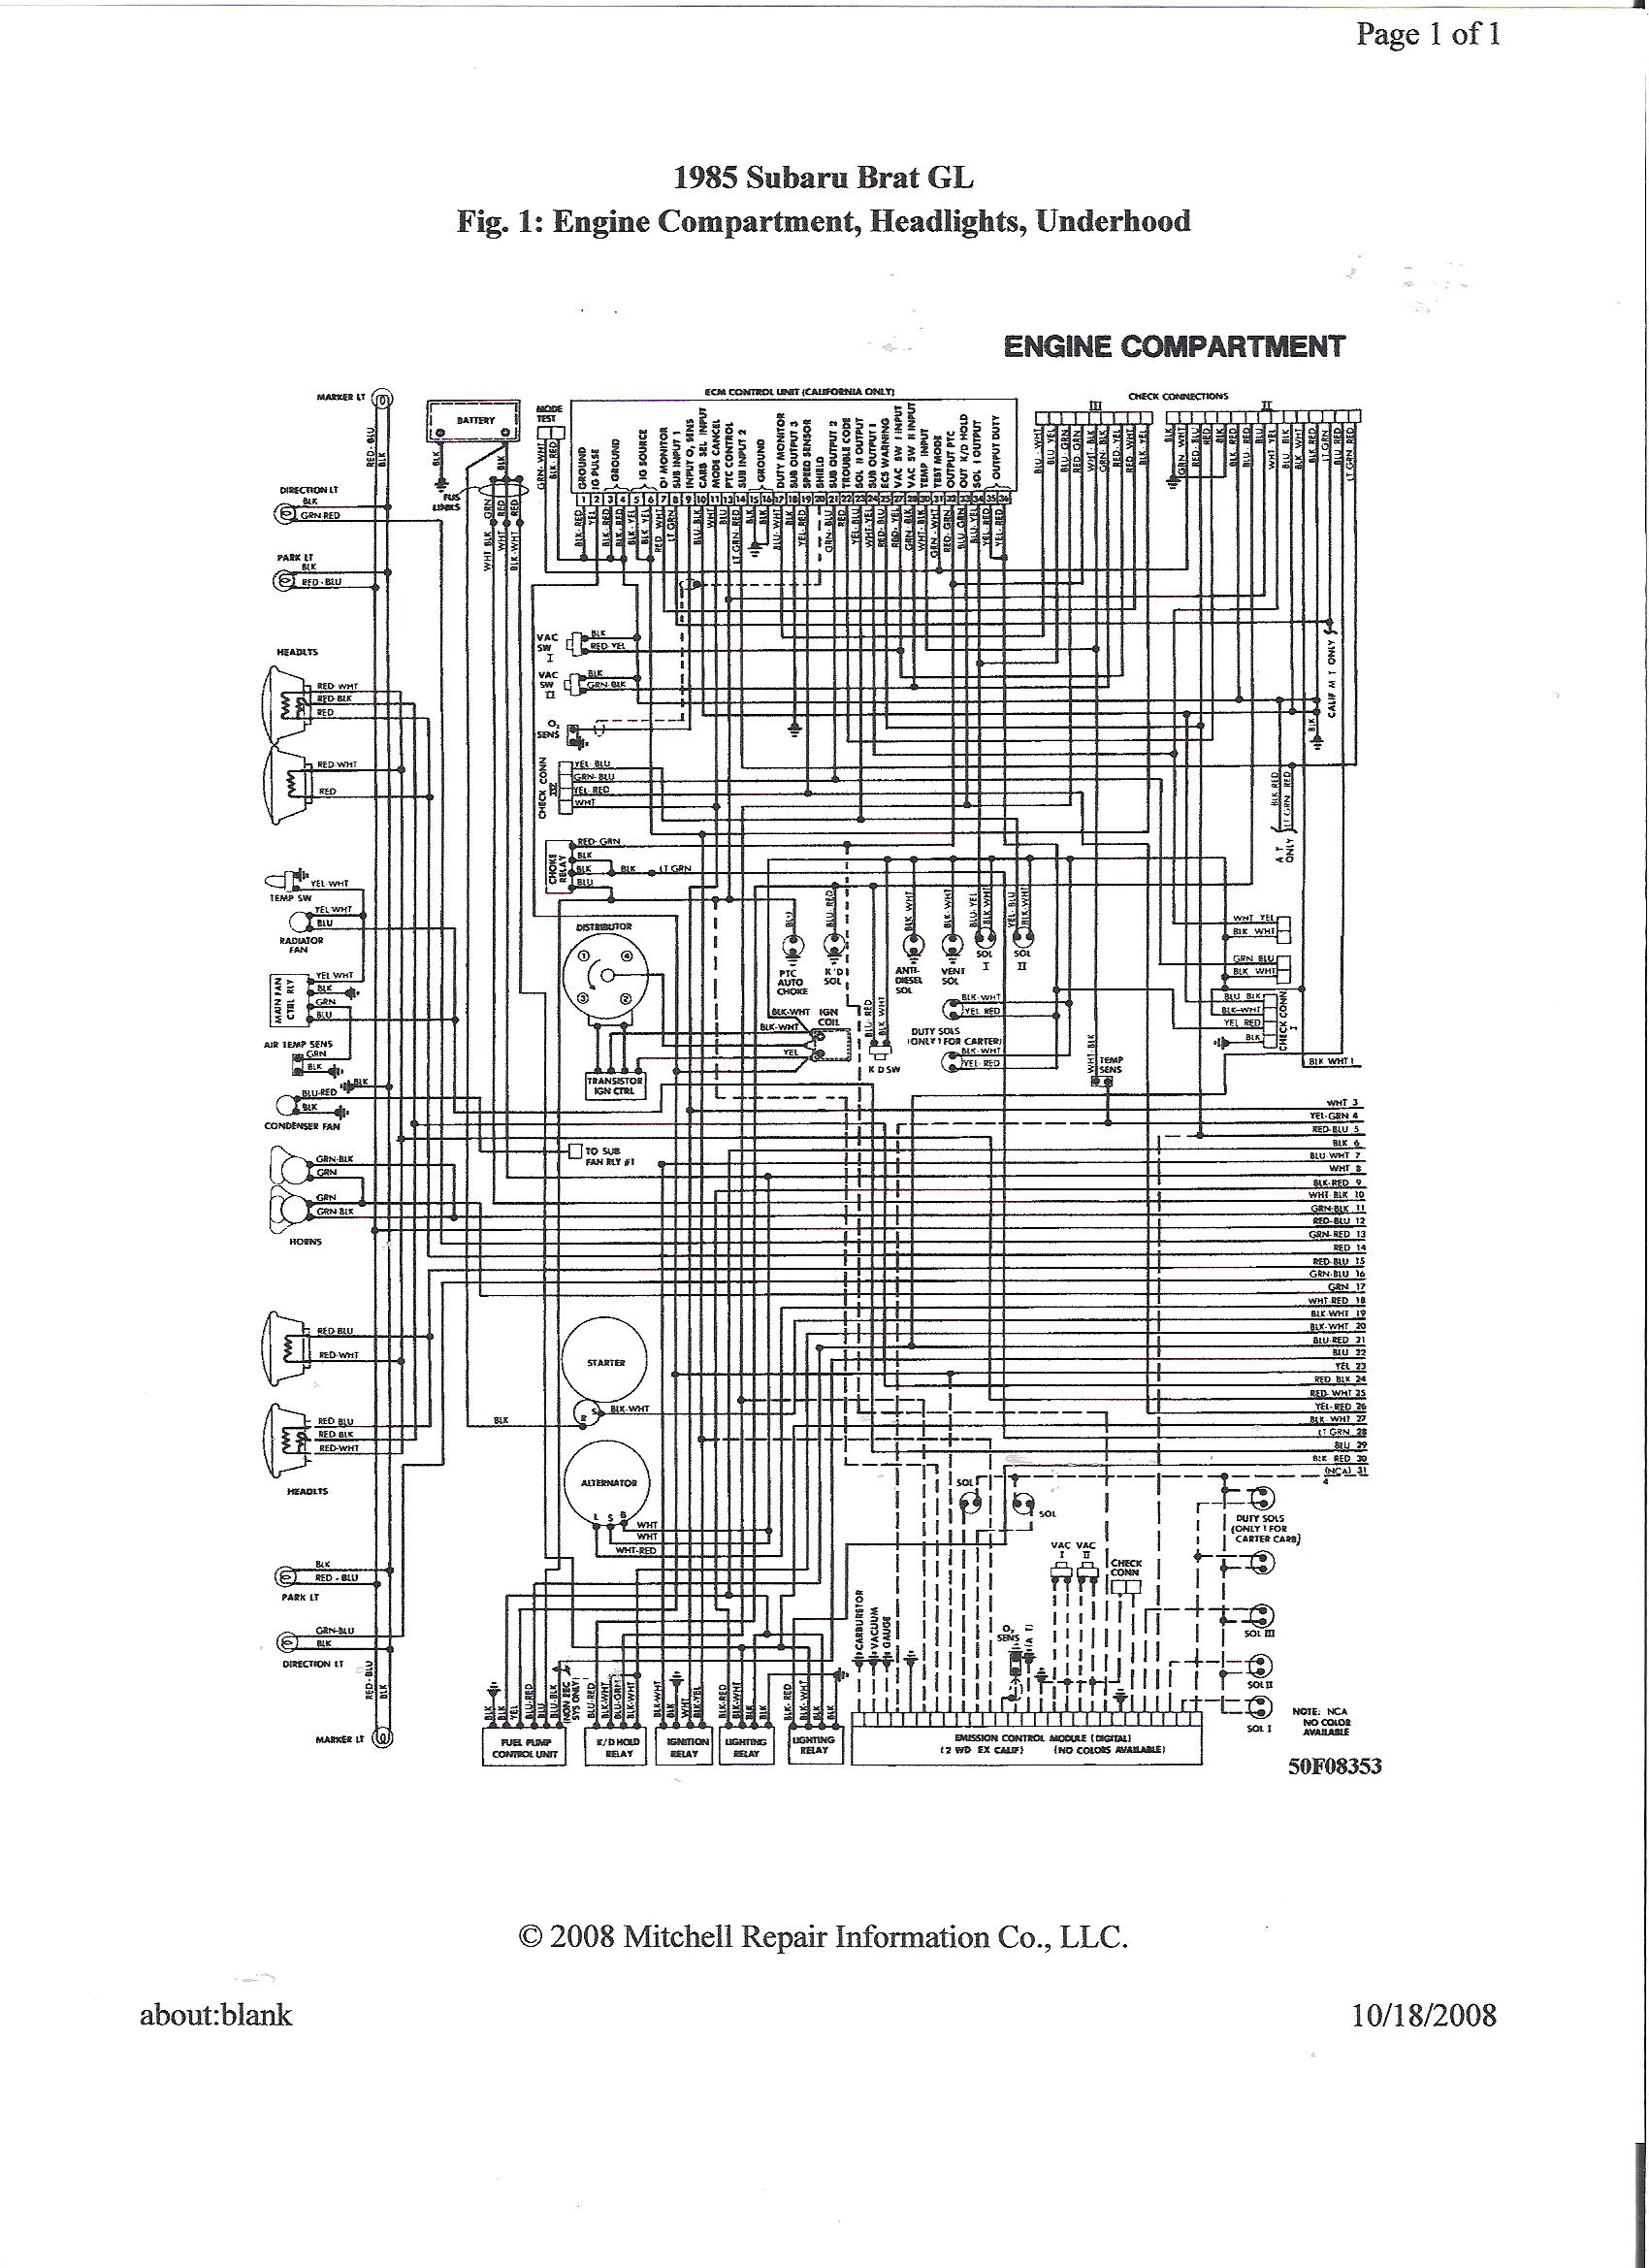 1985 Subaru Brat Wiring Diagram Another Blog About Univox U 1001 Schematic With Quad Headlights Low Beams Work But Lose All Rh Justanswer Com